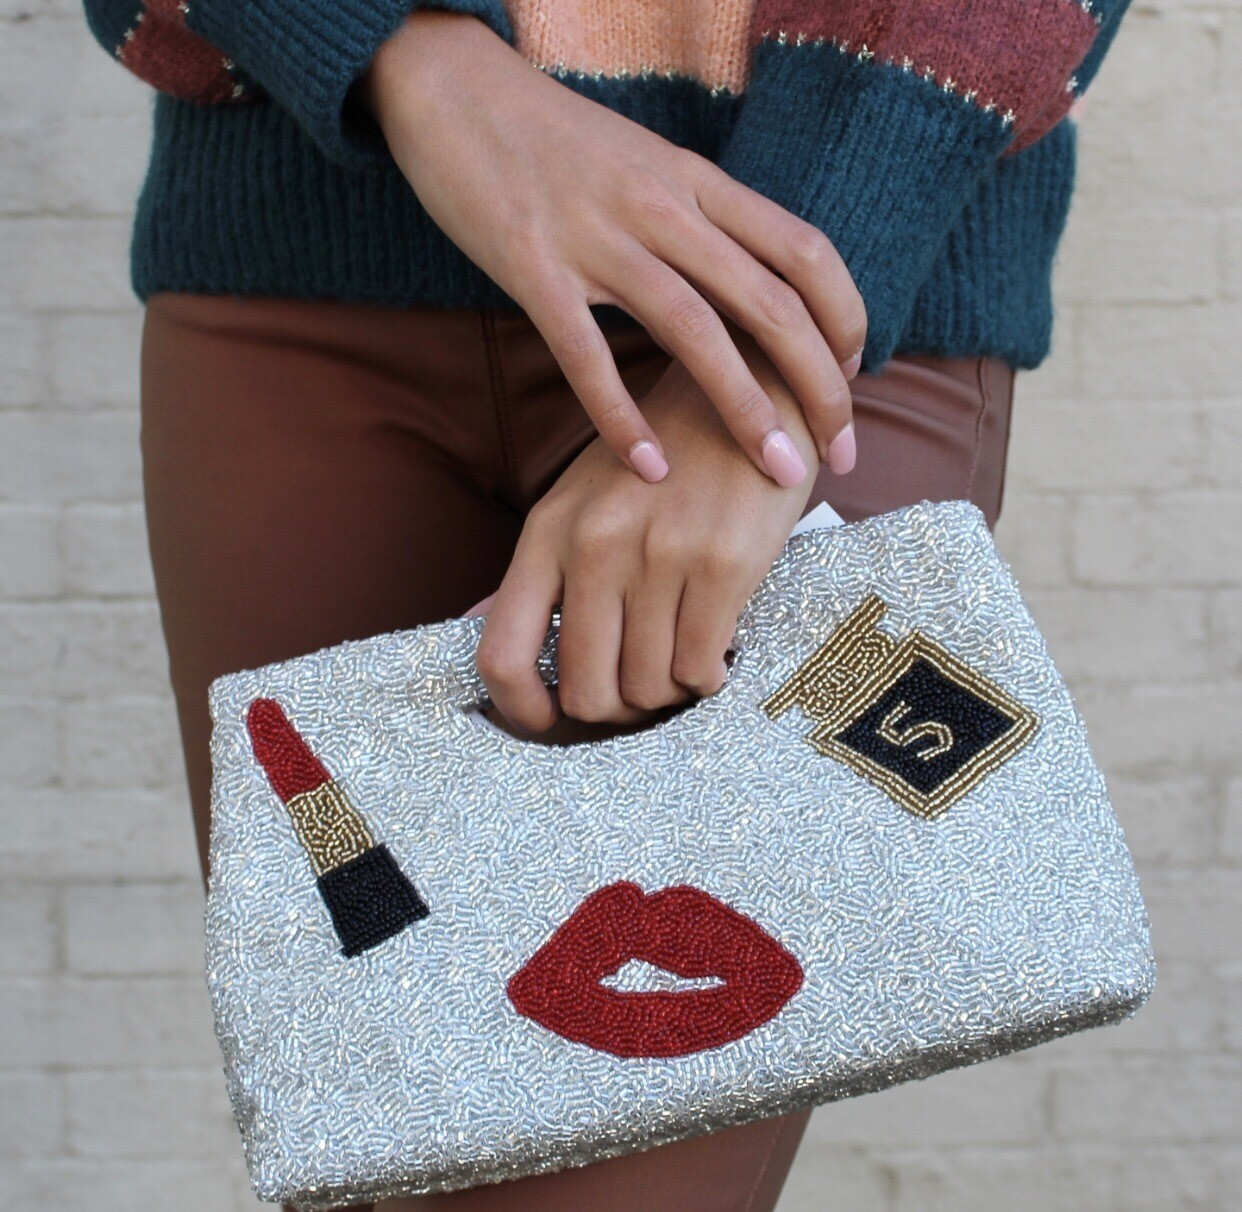 Preorder #5 Beaded Clutch 3-4 Weeks